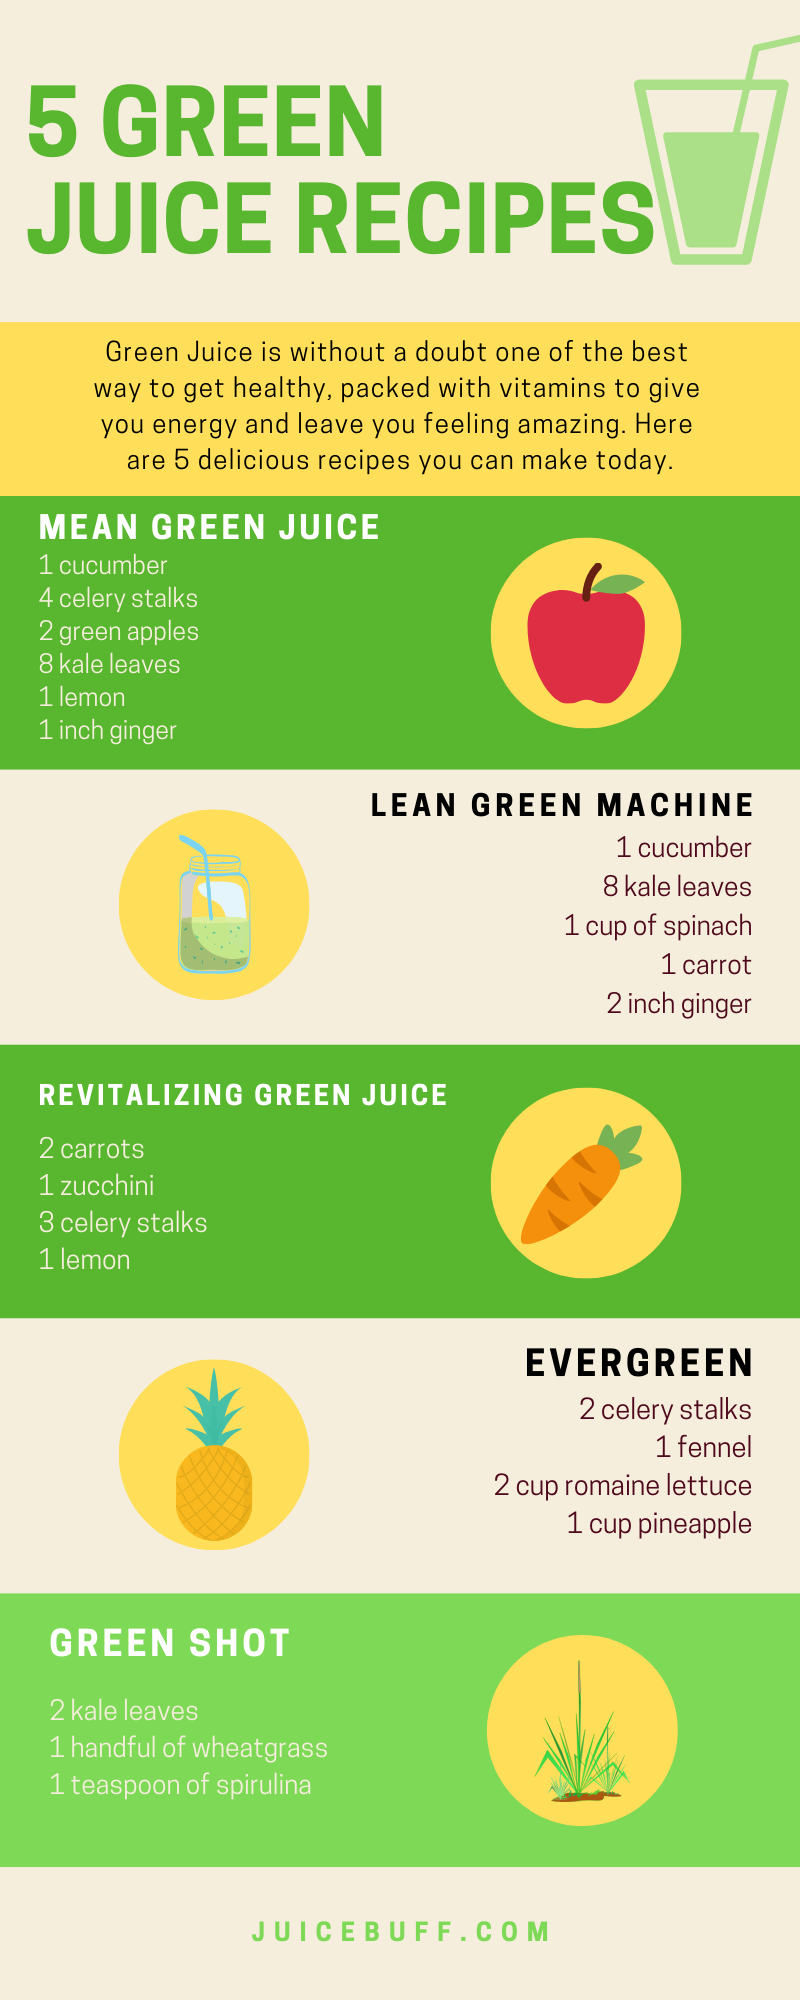 5 Easy and delicious green juice recipes that you can try today. Just wash all the ingredients, remove cores and roots, and you're ready to make some green juice!